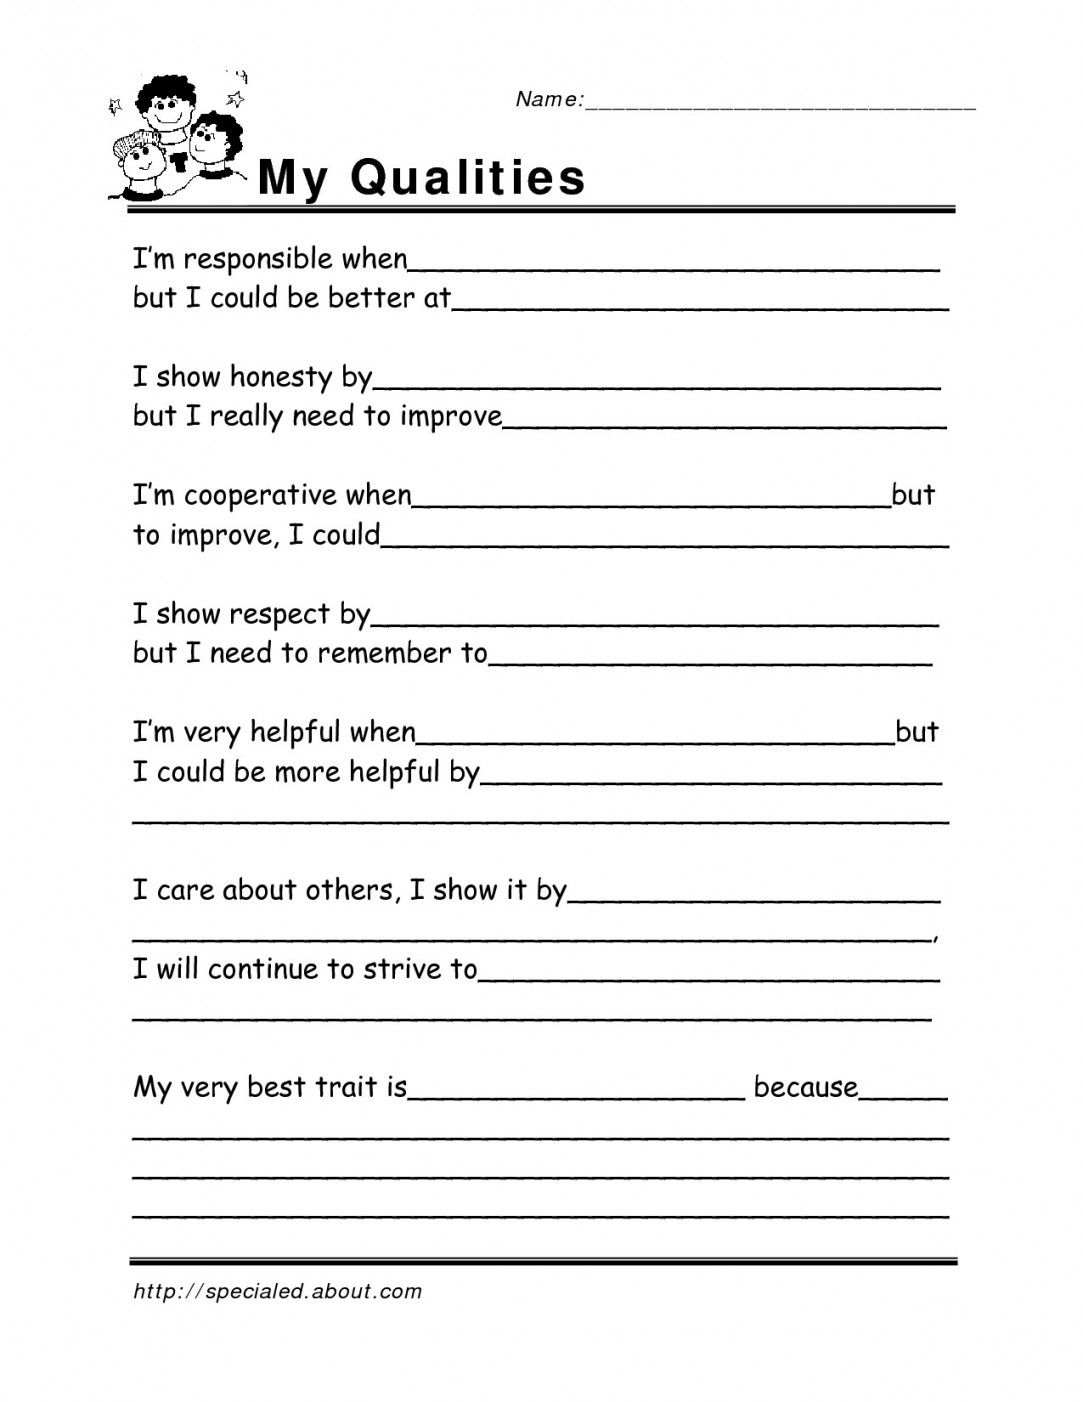 Free Printable Coping Skills Worksheets | Lostranquillos - Free Printable Coping Skills Worksheets For Adults